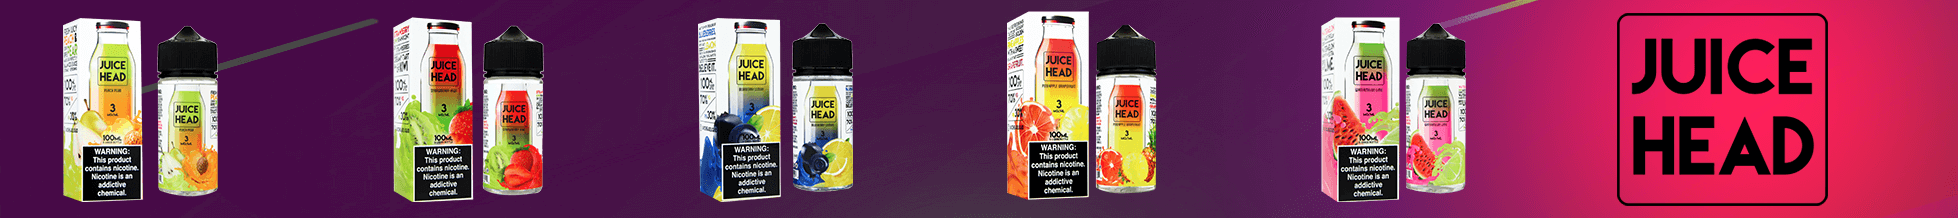 juice-head-category.png